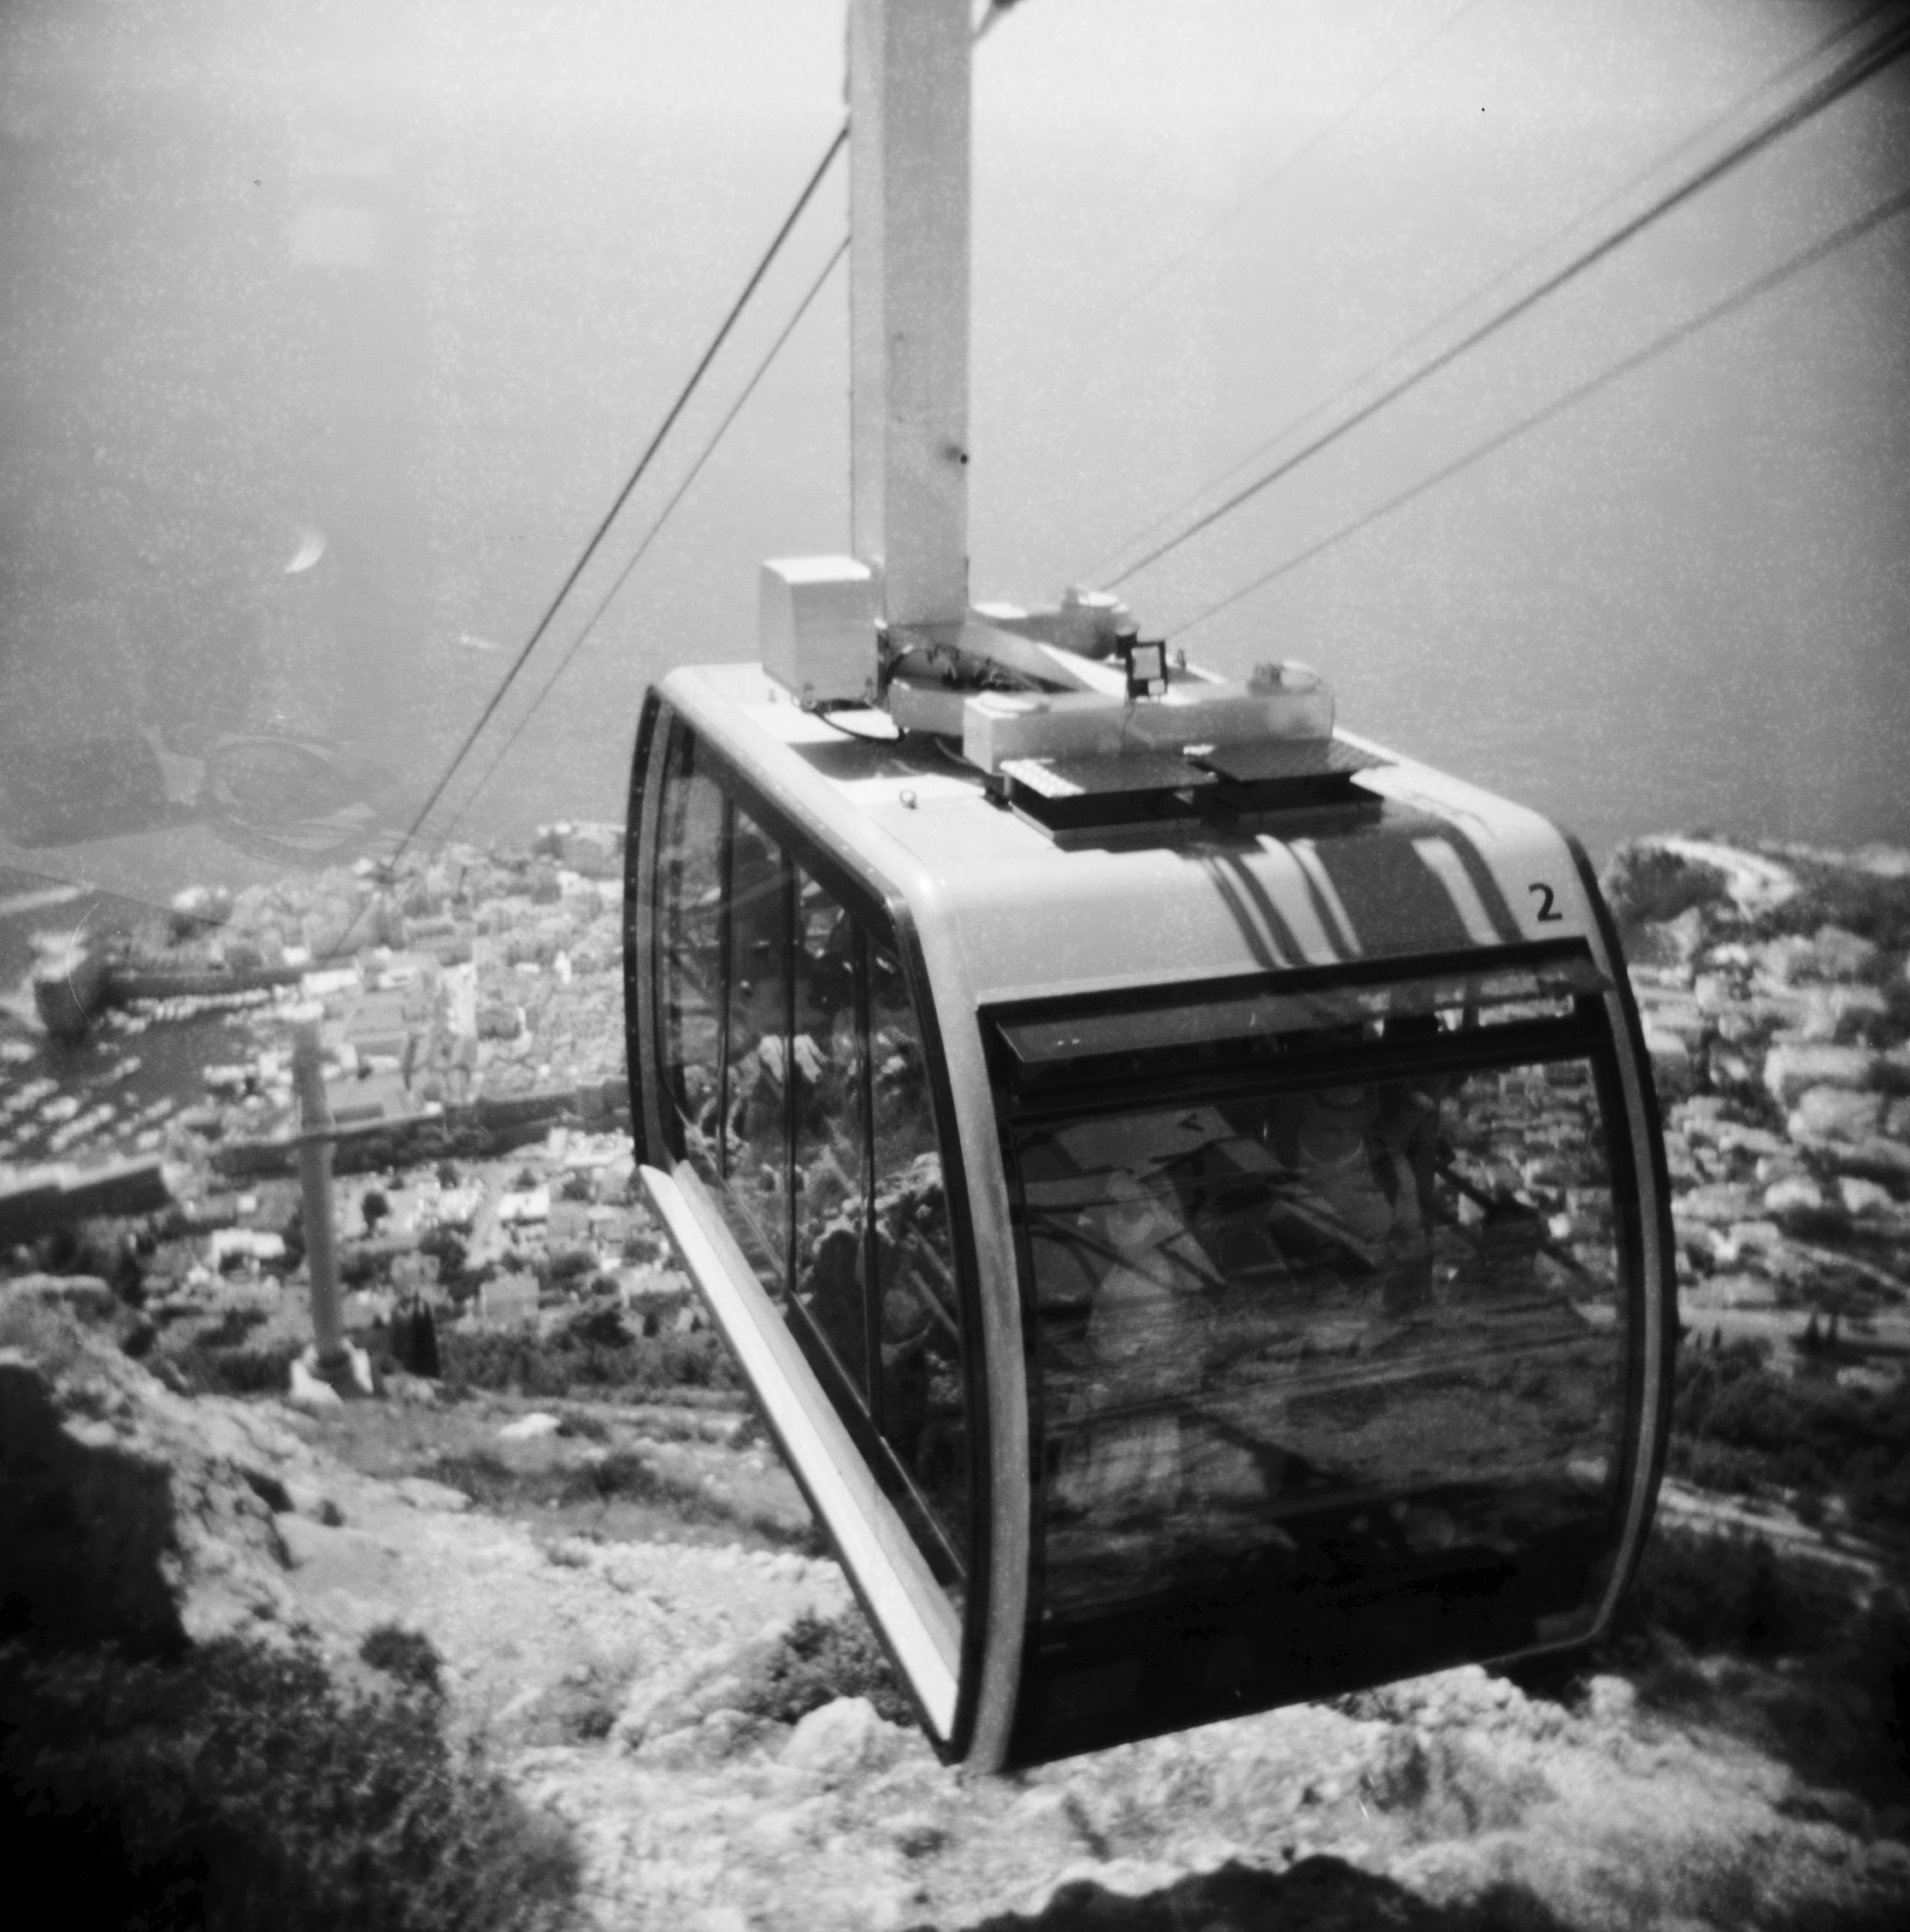 Cable Car | Holga | Expired PX100 | Katt Janson Merilo